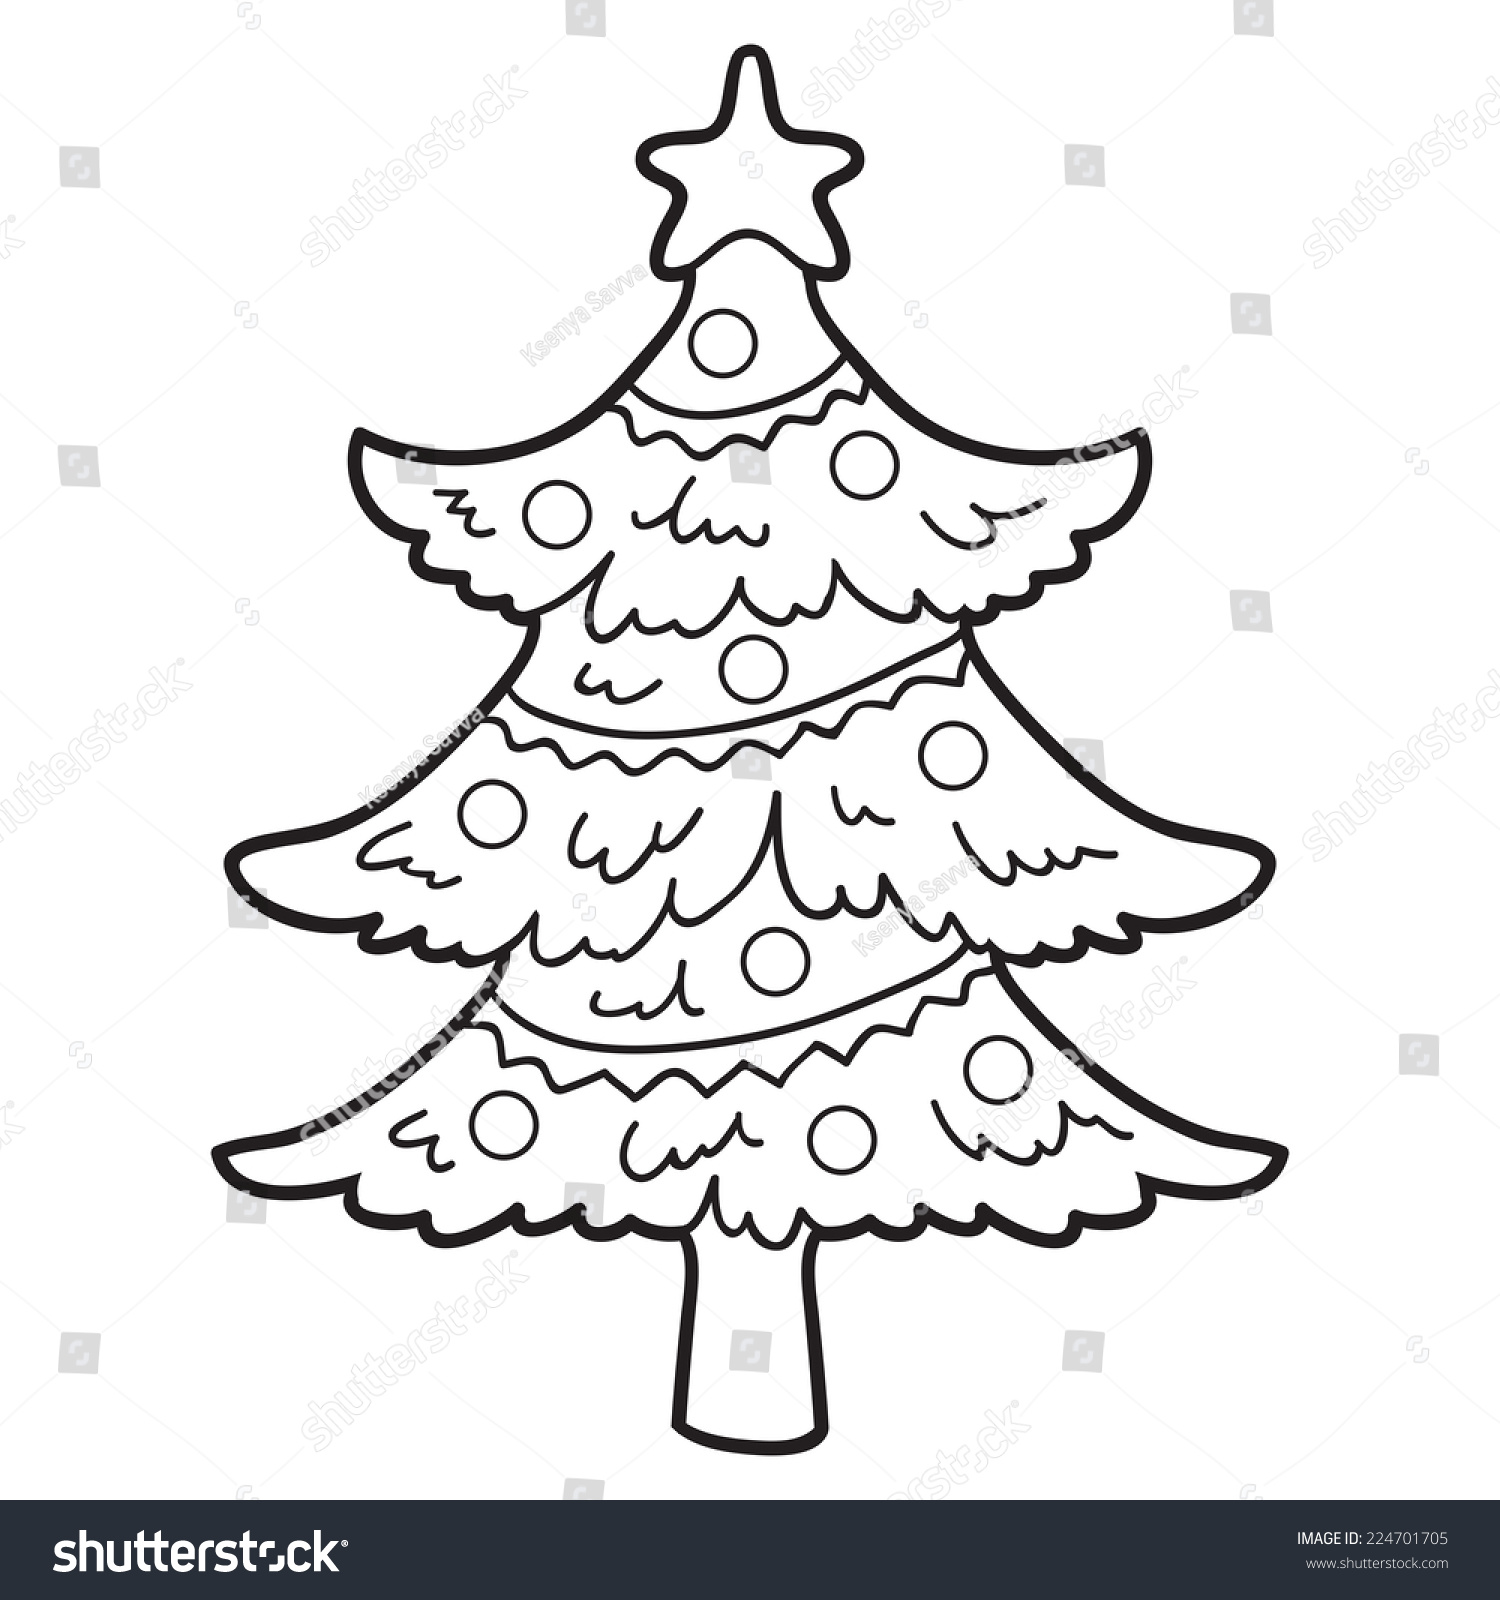 Coloring Book Christmas Tree Stock Vector 224701705 - Shutterstock